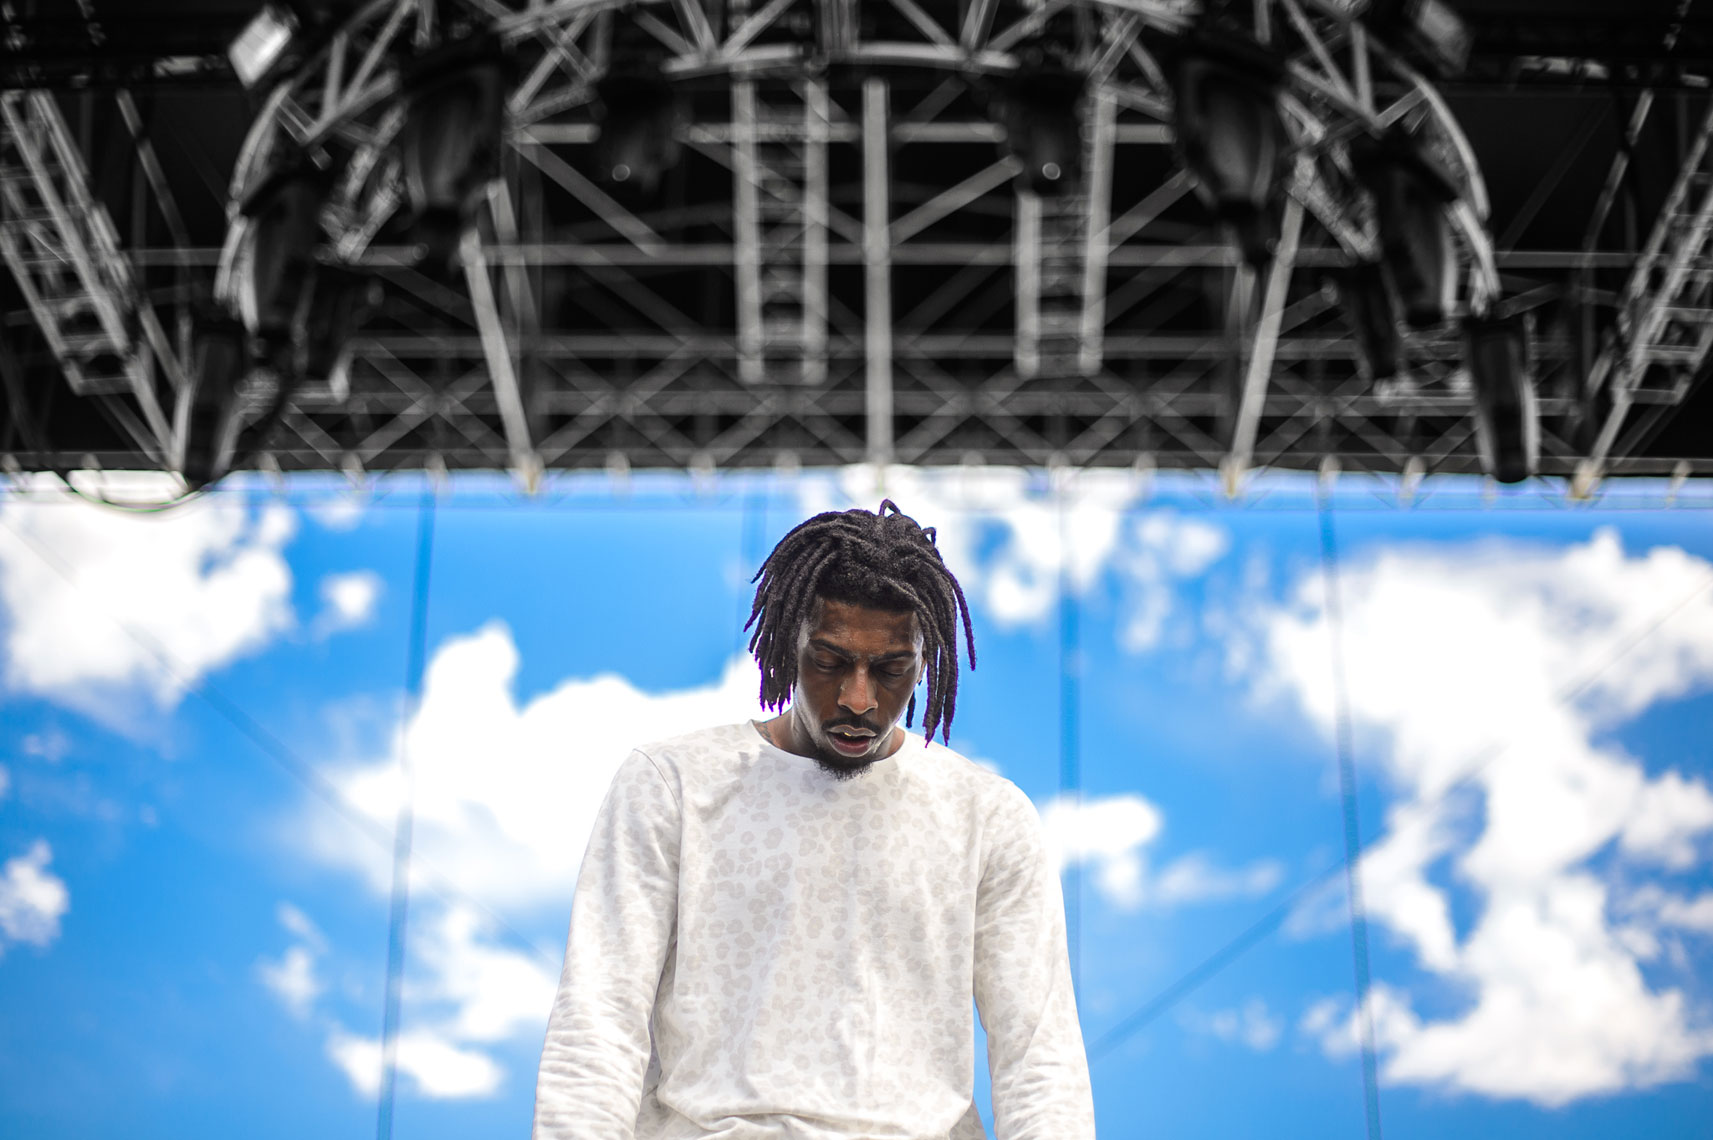 Flatbush Zombies at Coachella 2014